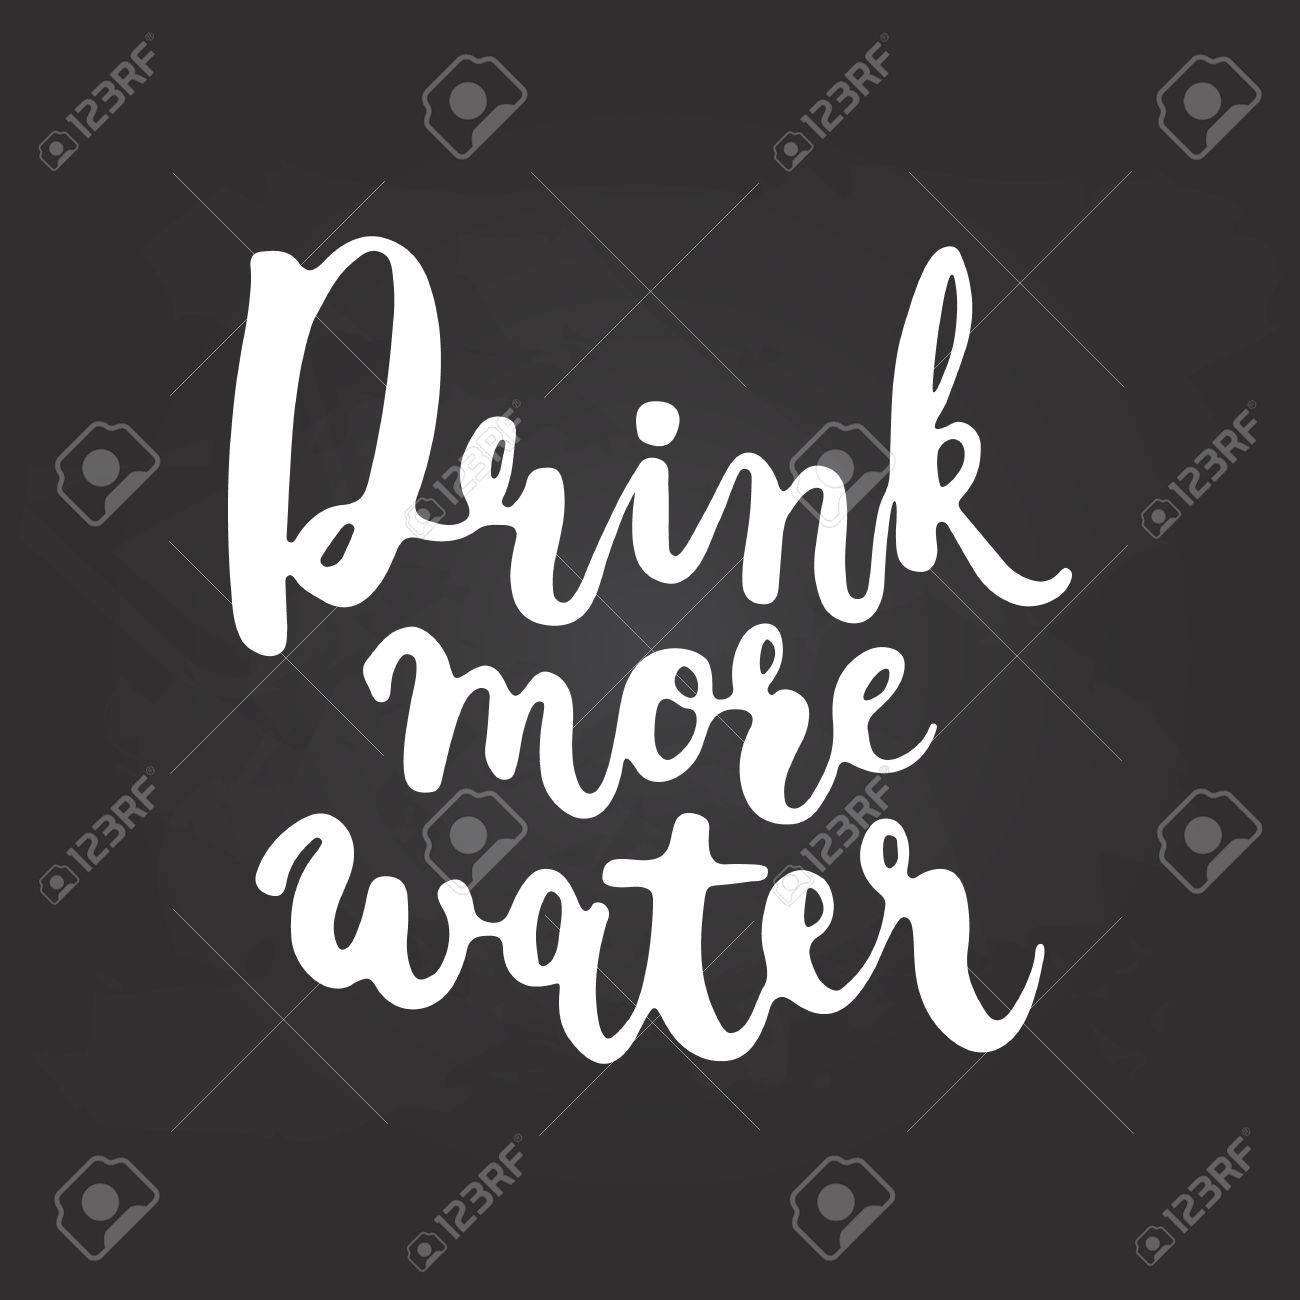 Hand Drawn Chalk Typography Lettering Phrase Drink More Water Isolated On The Black Chalkboard Background